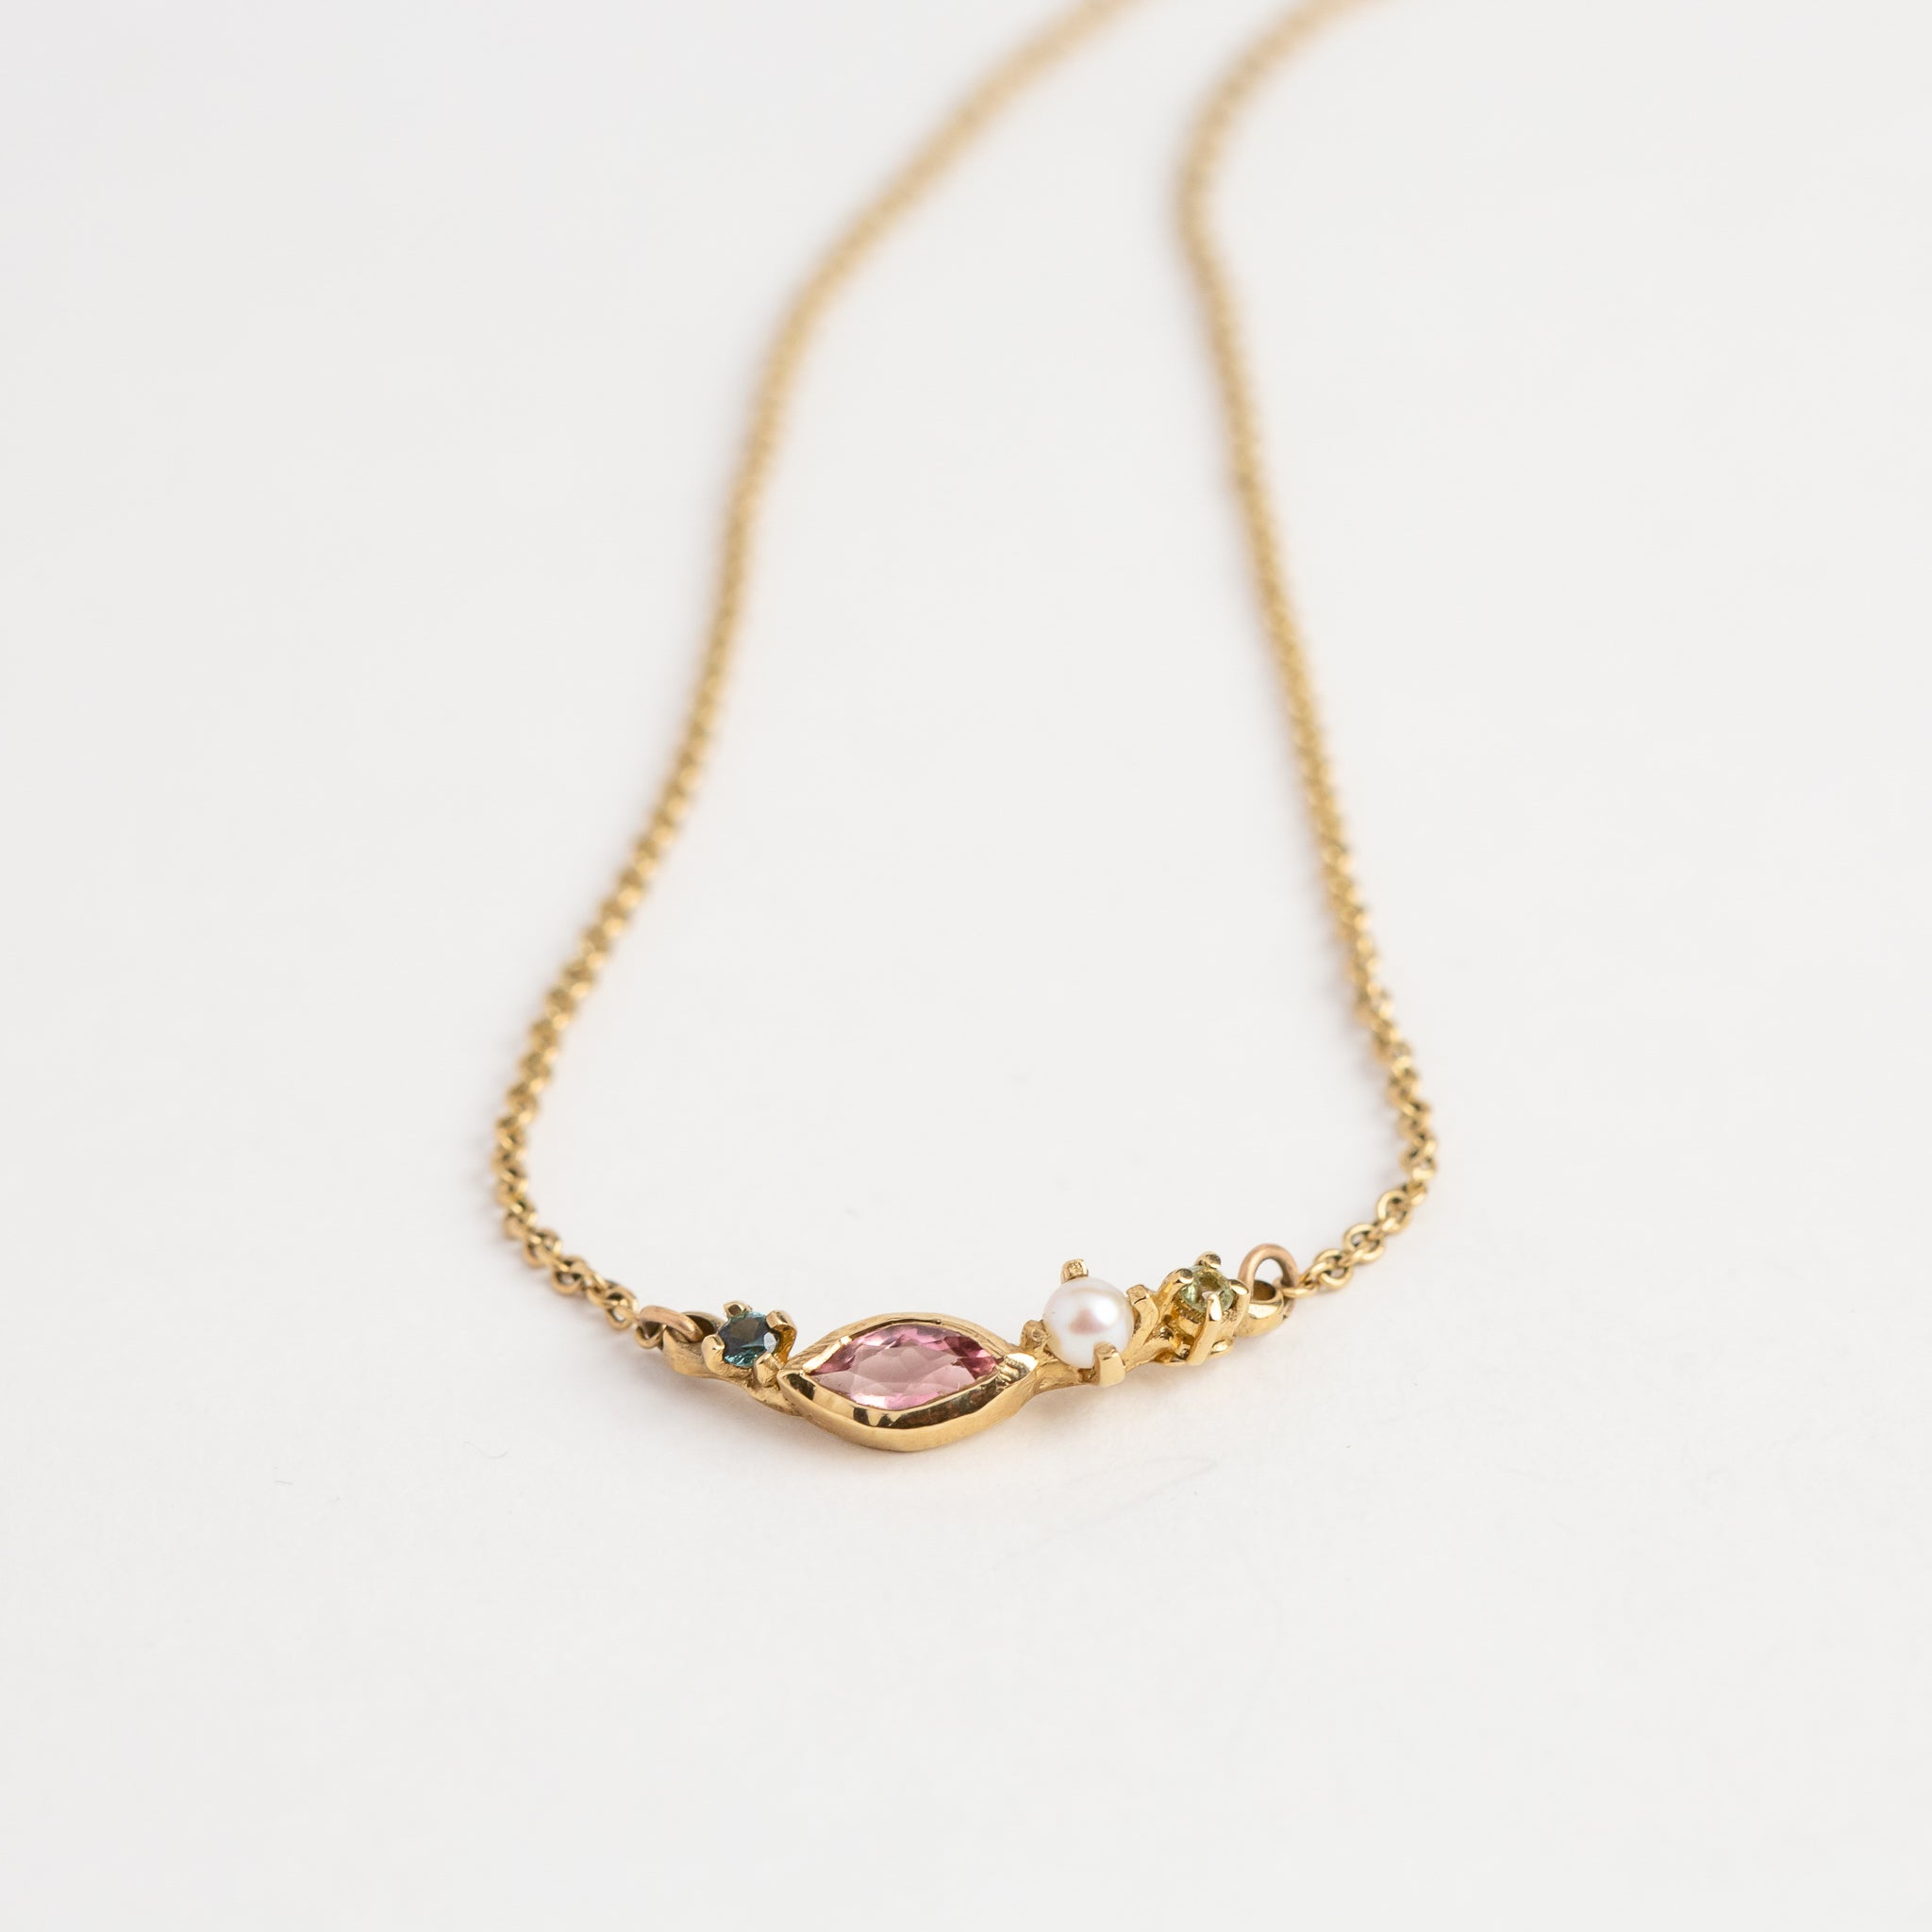 Pink Tourmaline, Pearl and Blue Green Sapphires in 9ct gold Necklace, Custom bespoke handmade.